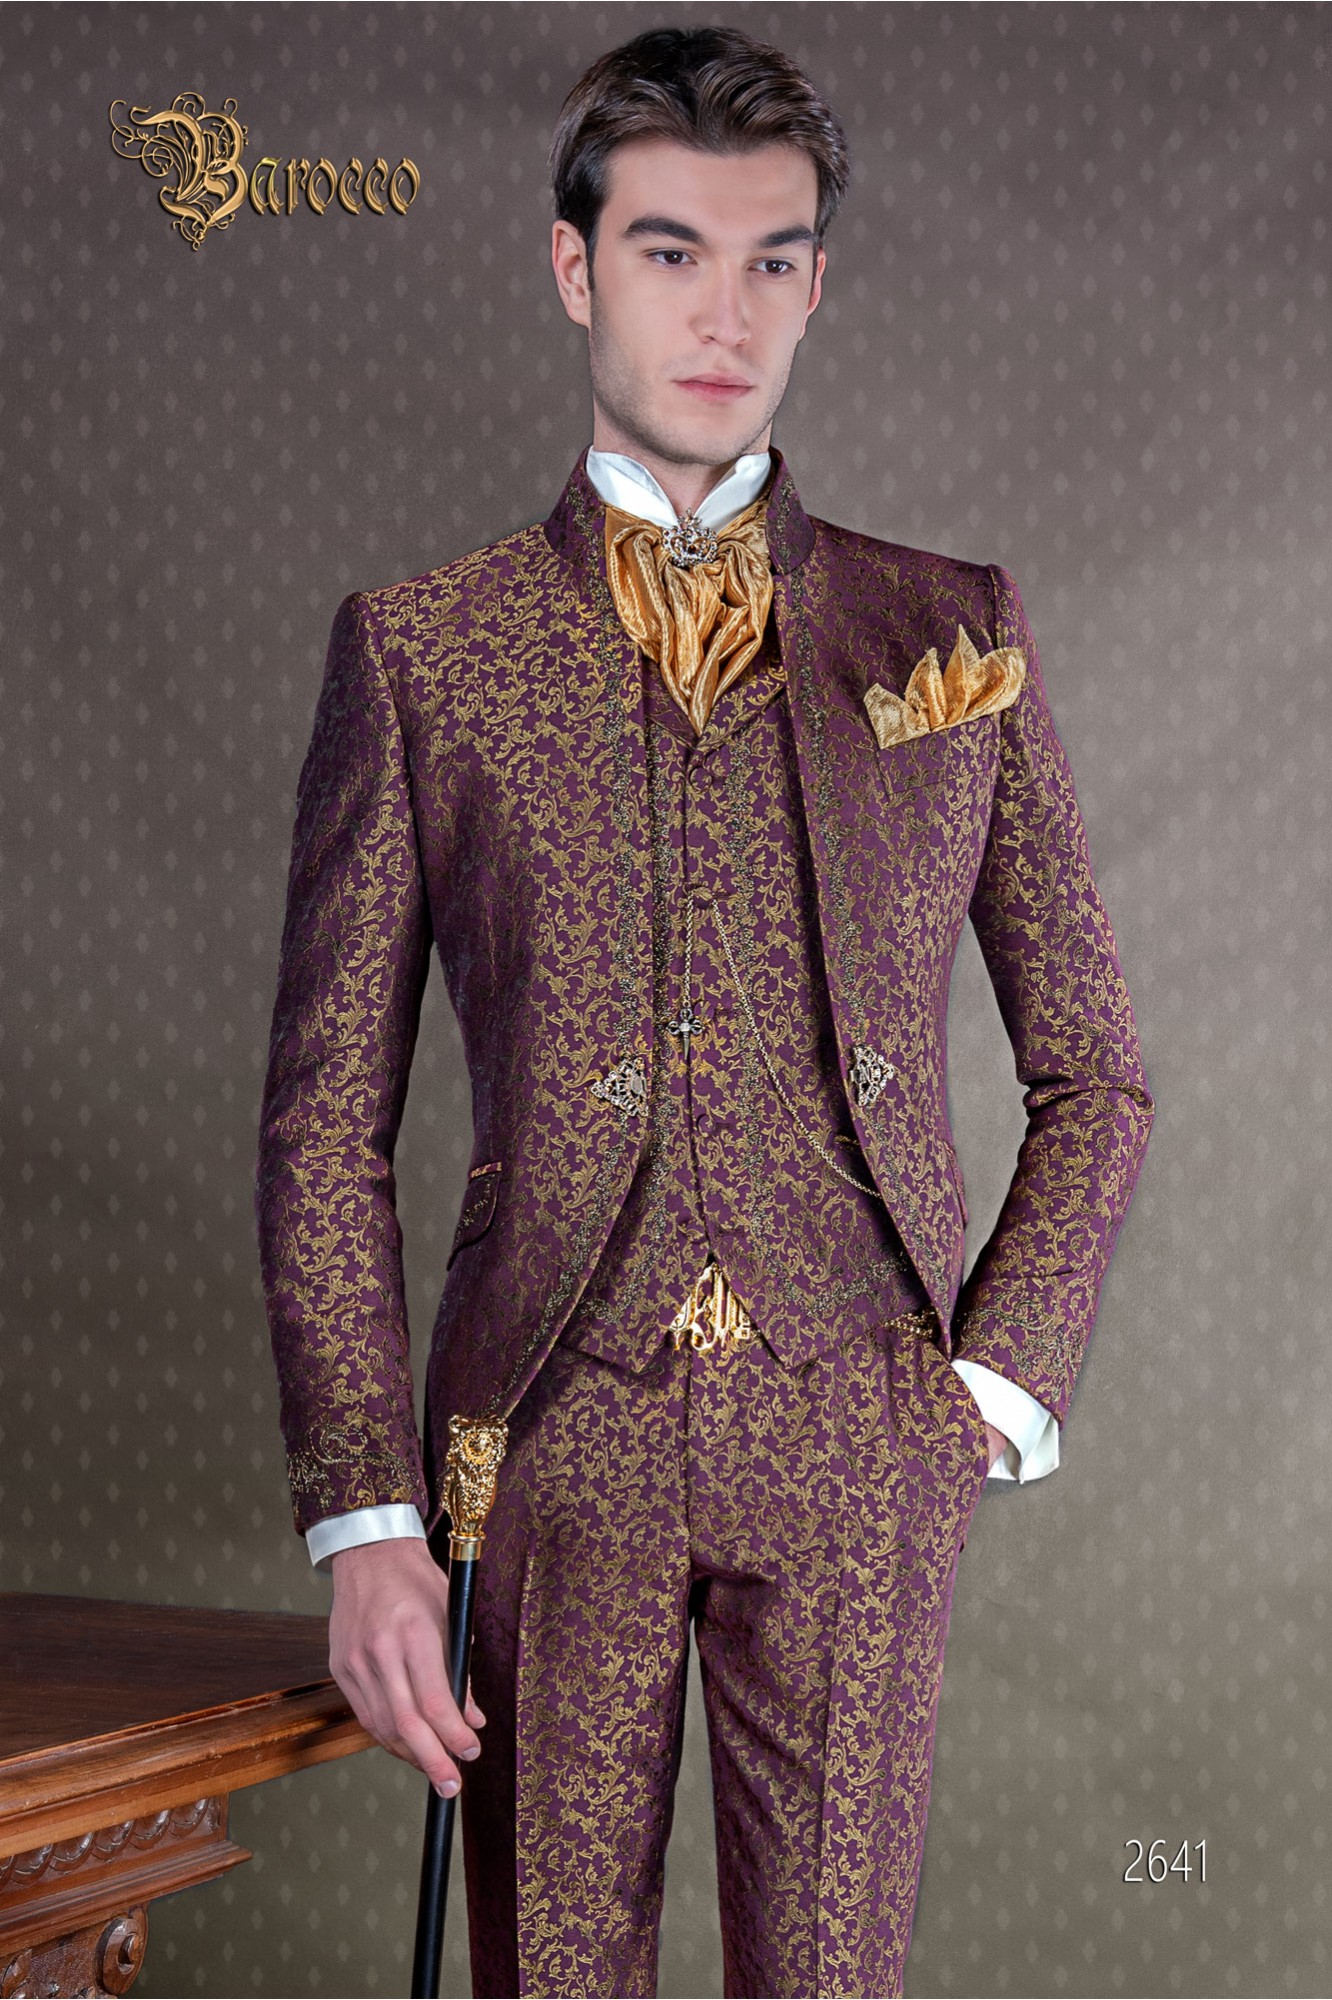 Baroque groom suit, vintage mao collar frock coat in purple and gold jacquard fabric with golden embroidery